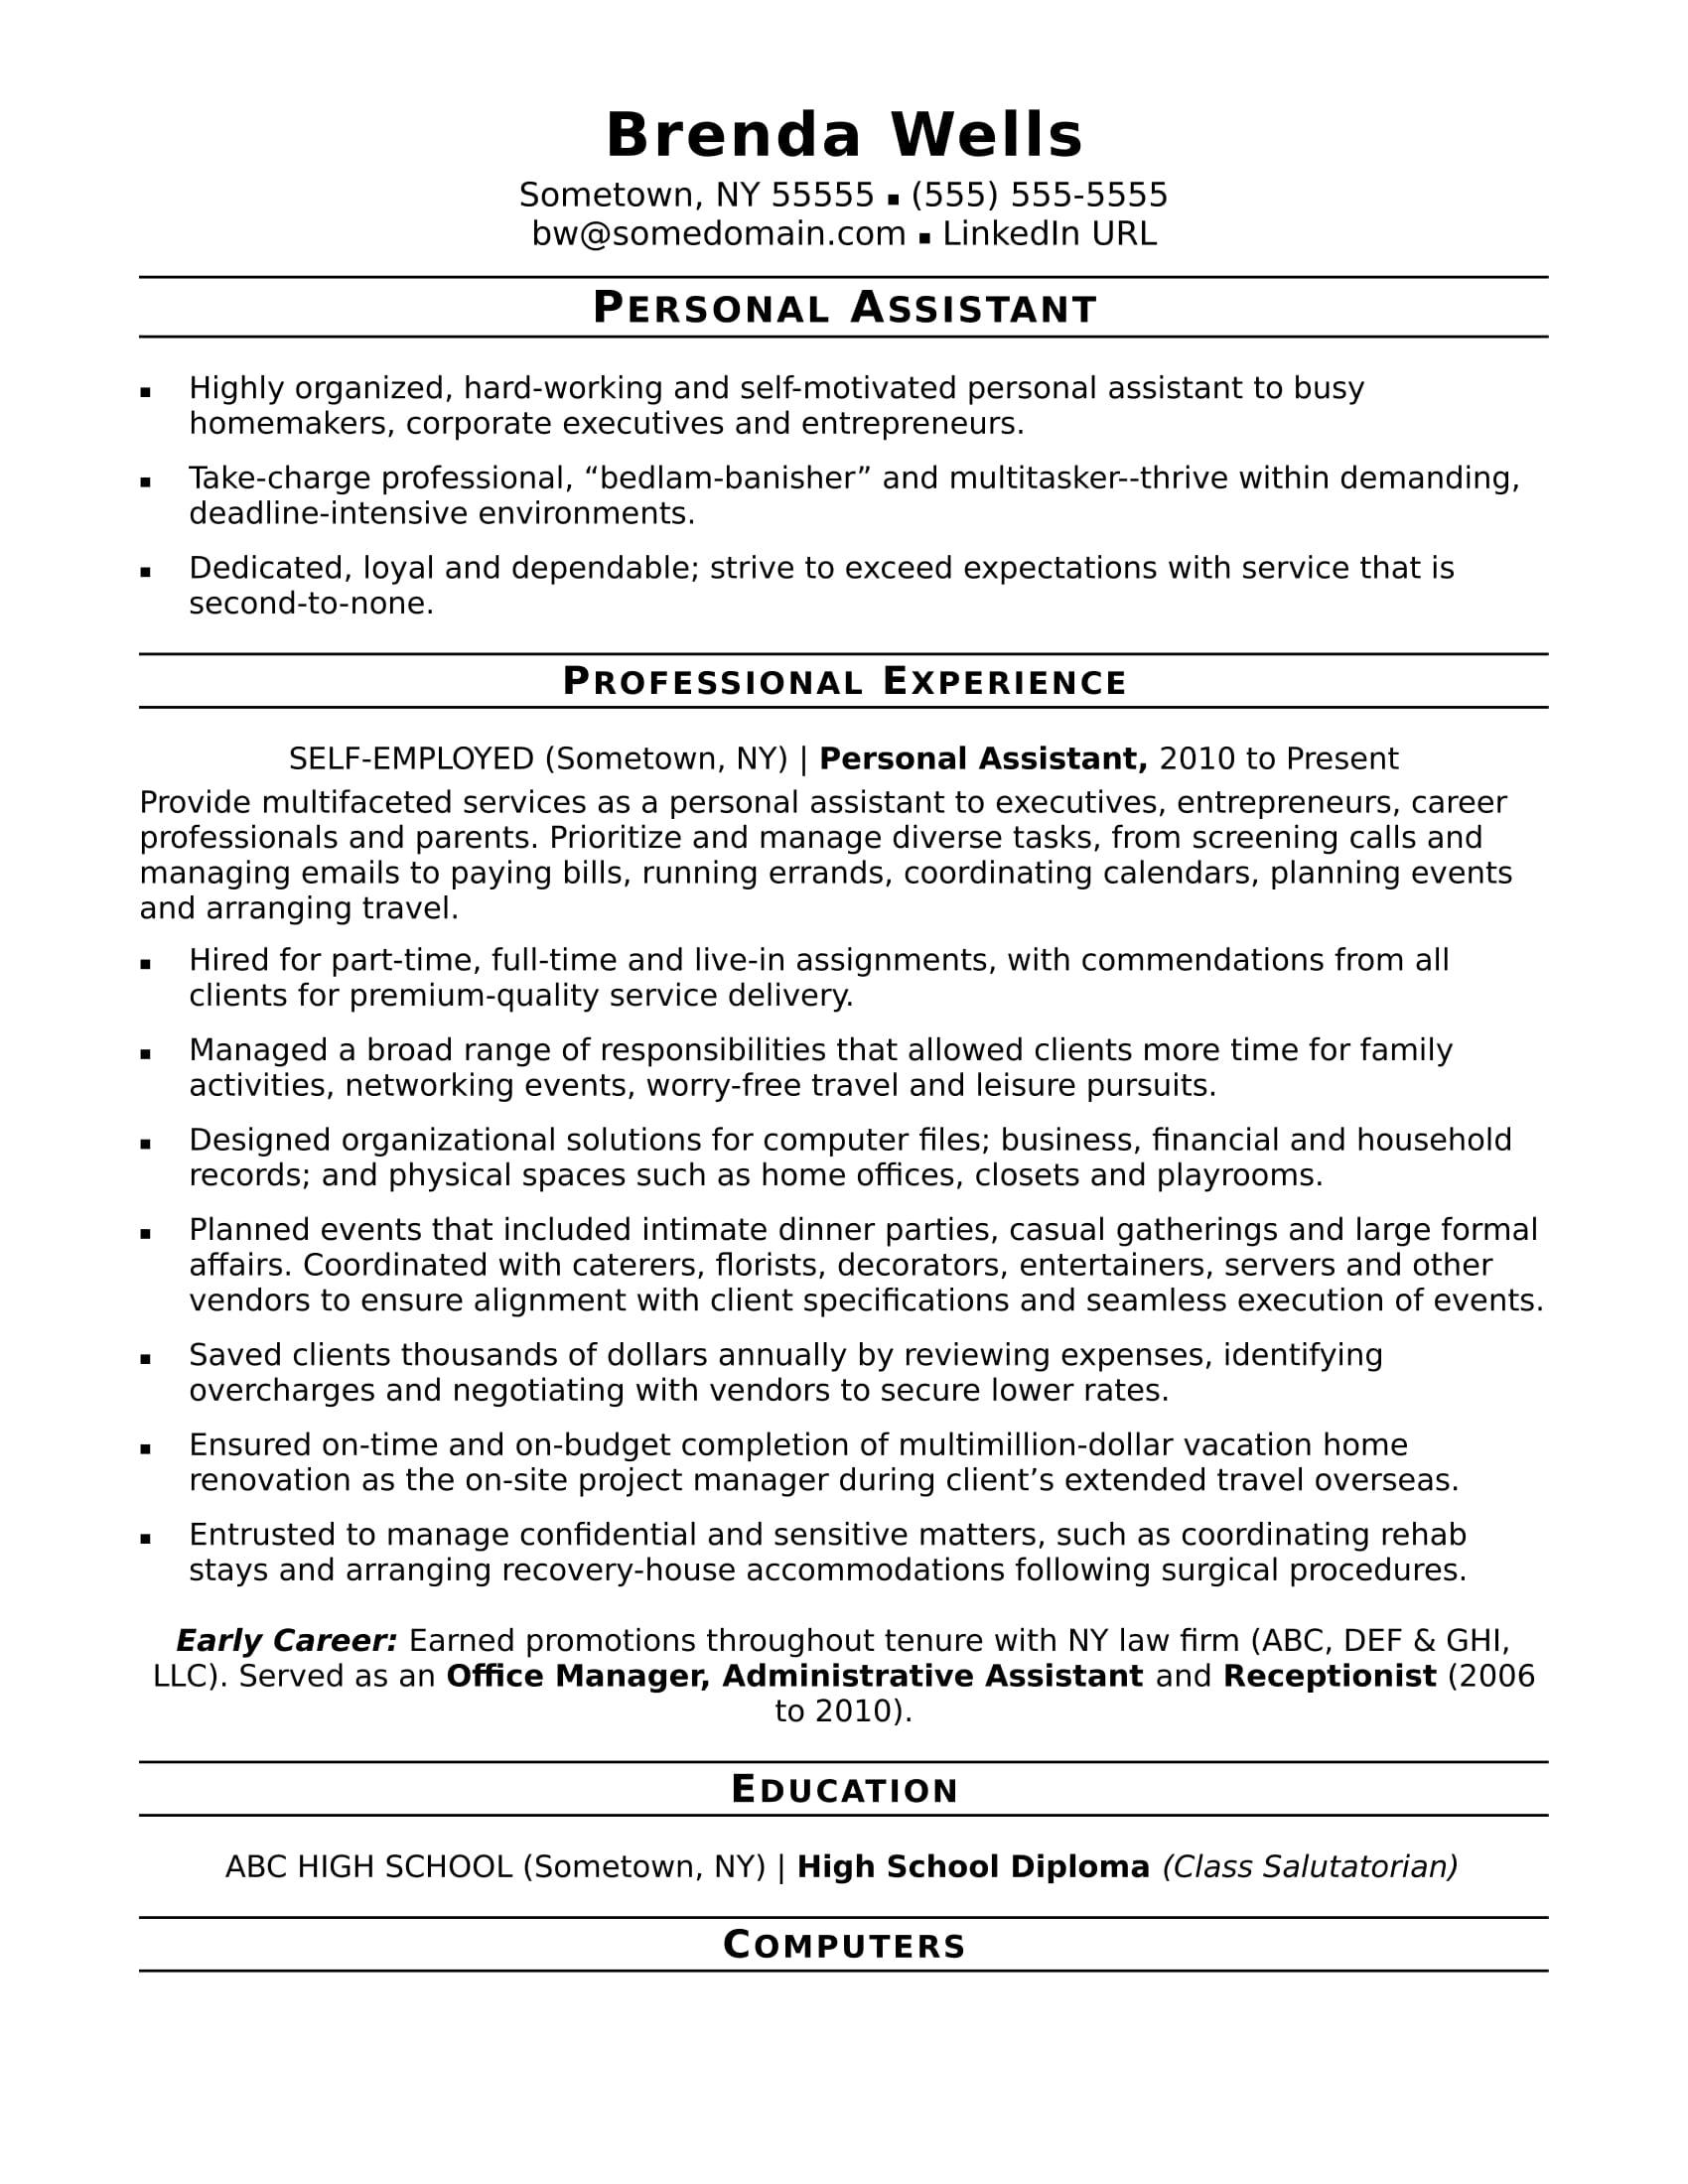 personal assistant resume sample monster second job examples financial planning and Resume Second Job Resume Examples